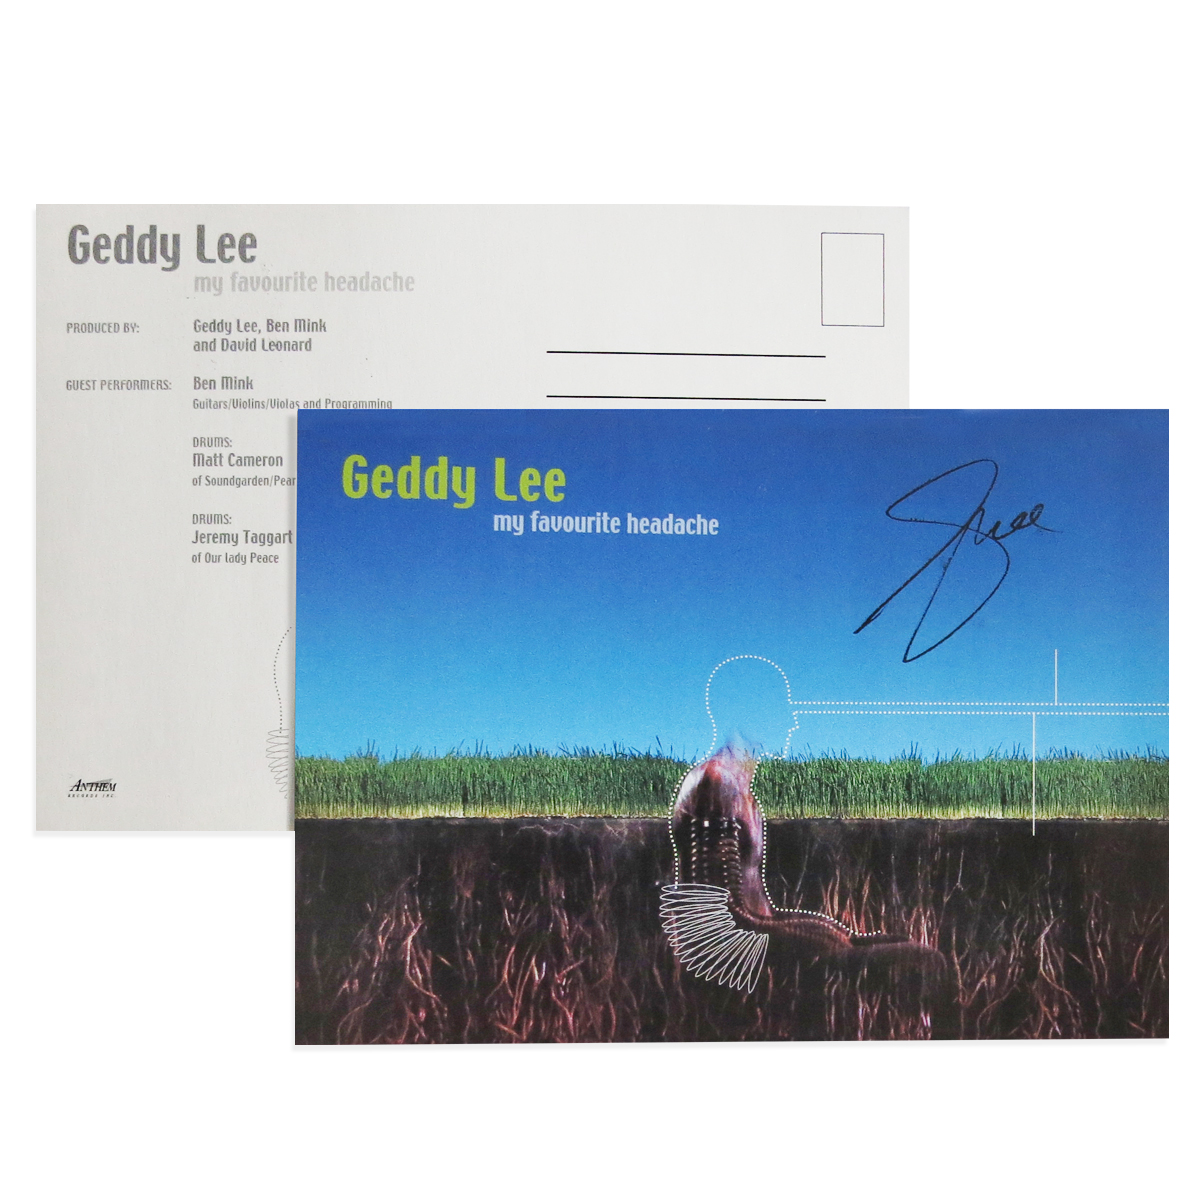 Geddy Lee - My Favourite Headache 2LP Vinyl + Luxe Limited Edition - Geddy Lee's Big Beautiful Book of Bass + Geddy LeePerfekt Knot Tee + Promo CD from the Archives + Autographed MFH Postcard